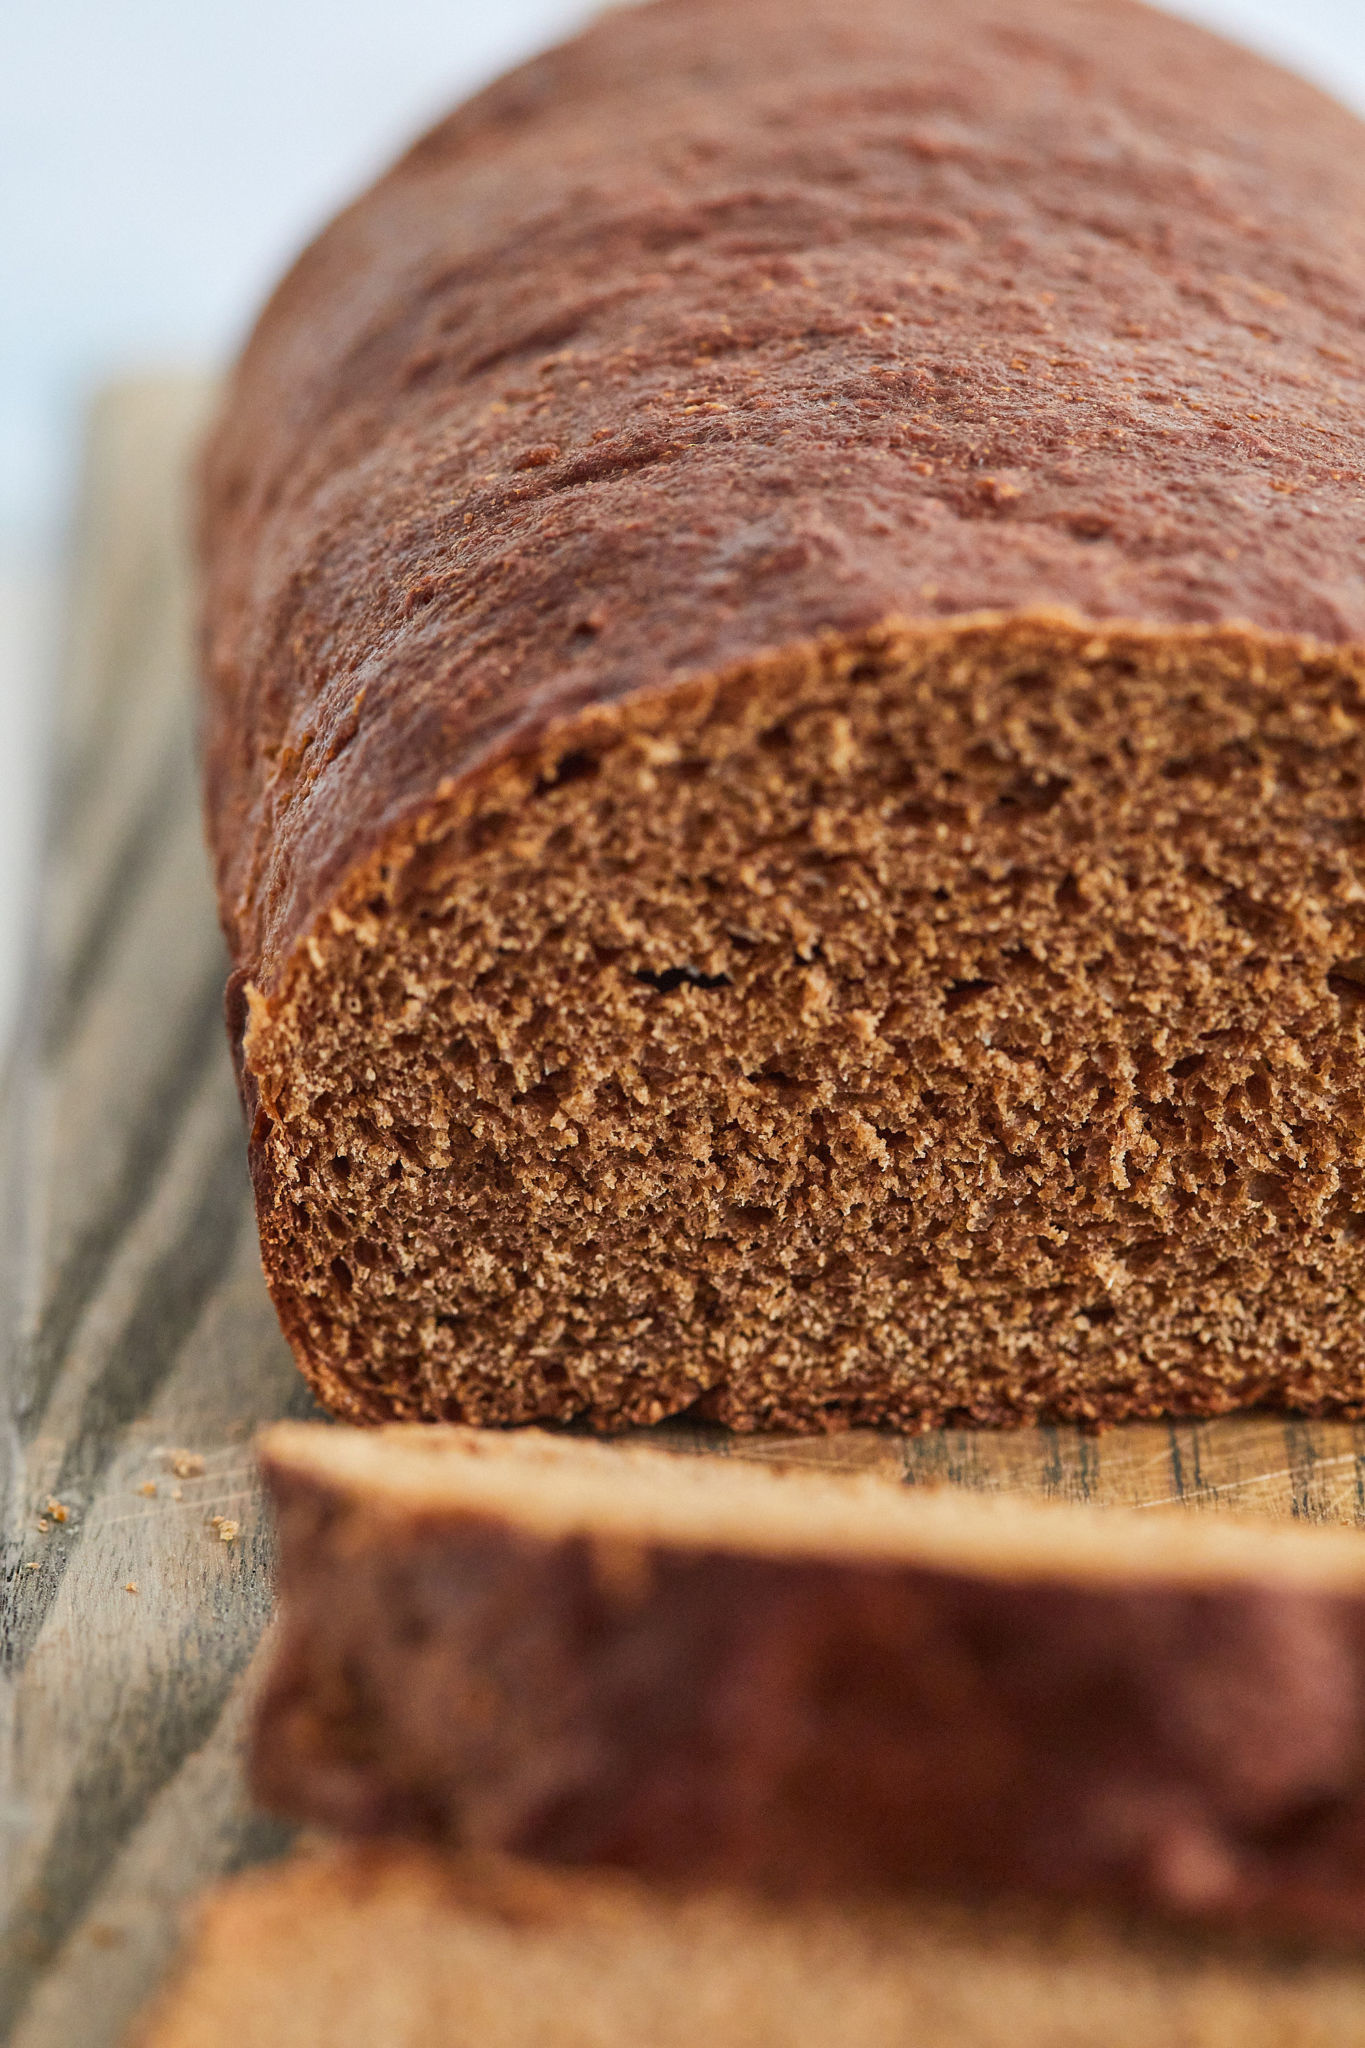 Close up of the crumb inside my steakhouse pumpernickel bread.